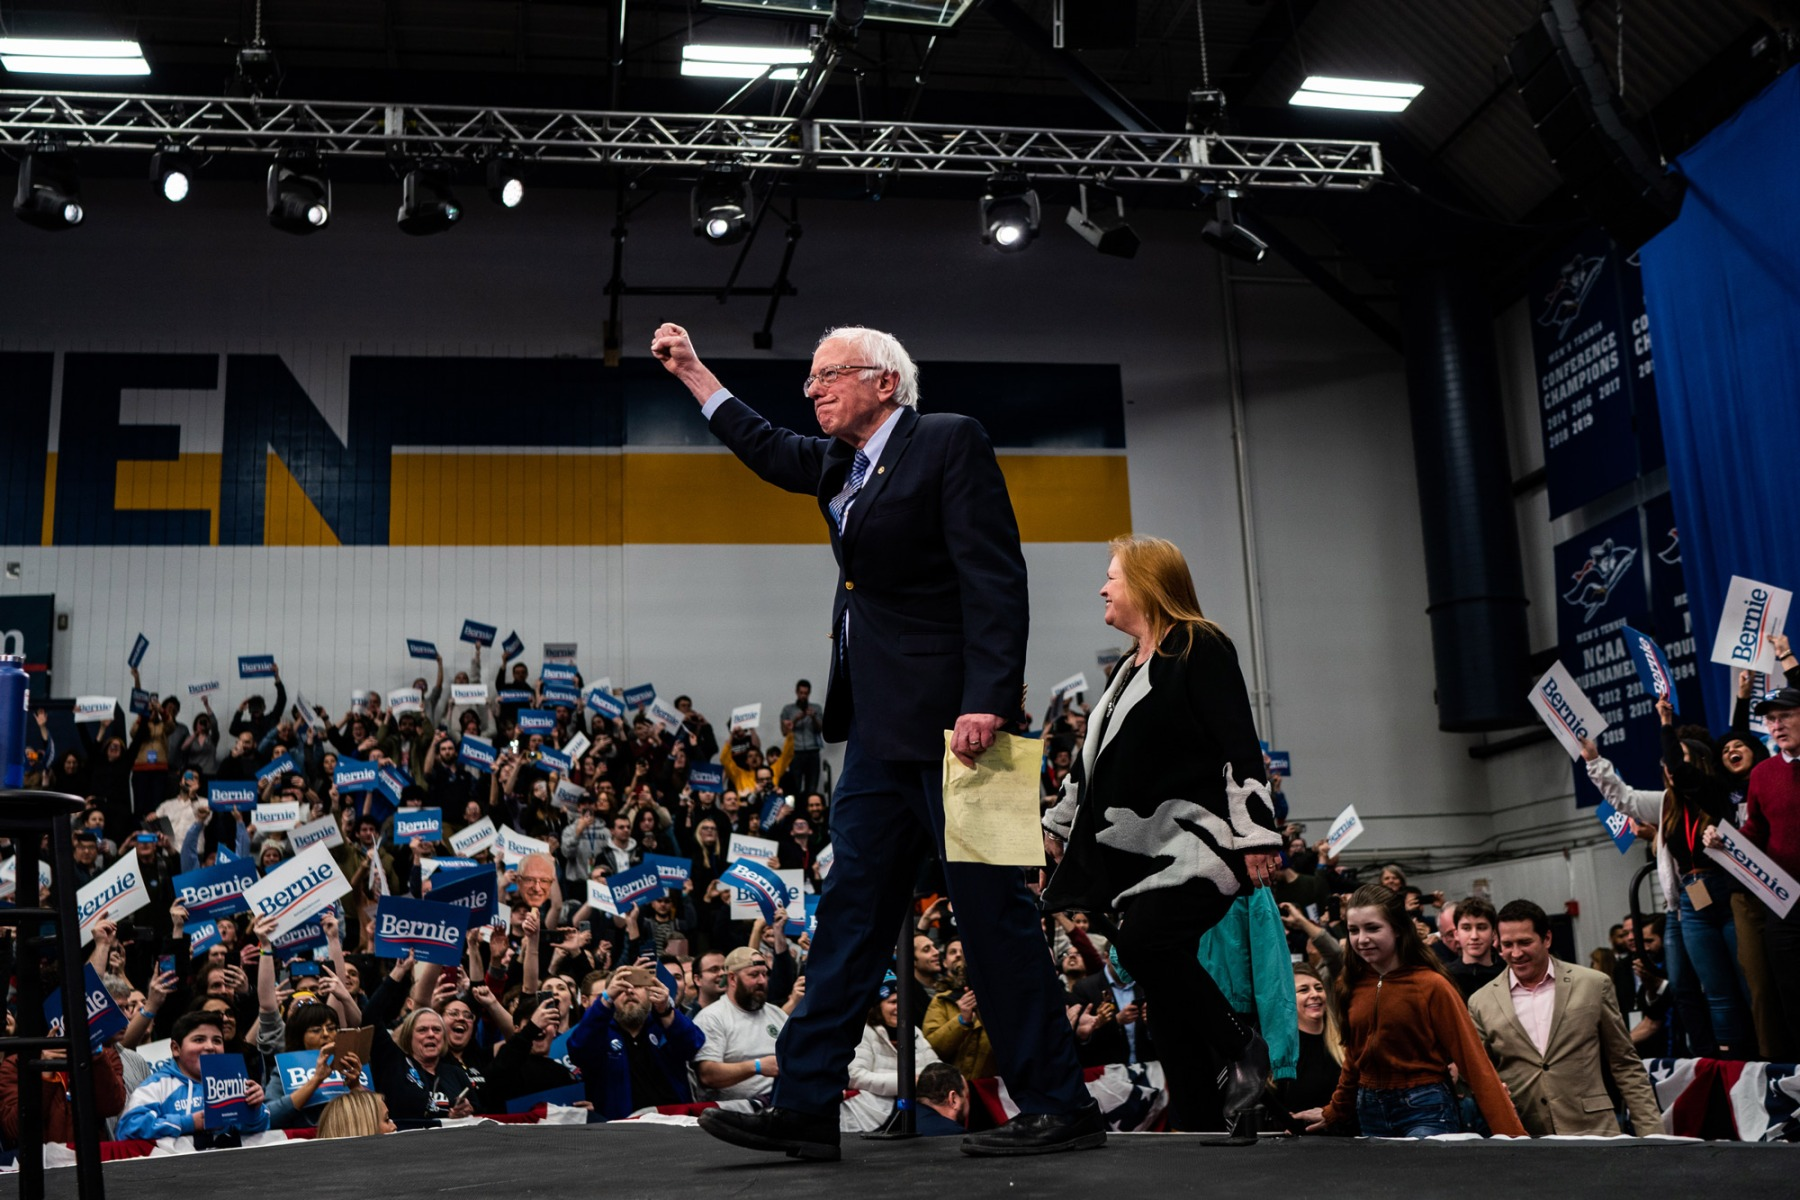 MANCHESTER, NEW HAMPSHIRE  - FEBRUARY 11: Sen. Bernie Sanders, I-Vt., 2020 Democratic Presidential Candidate, goes up the stage with his family after winning New Hampshire Primary during Primary Night Celebration at SNHU Field House on Tuesday, February 11, 2020 in Manchester, New Hampshire. (Photo by Salwan Georges/The Washington Post via Getty Images)